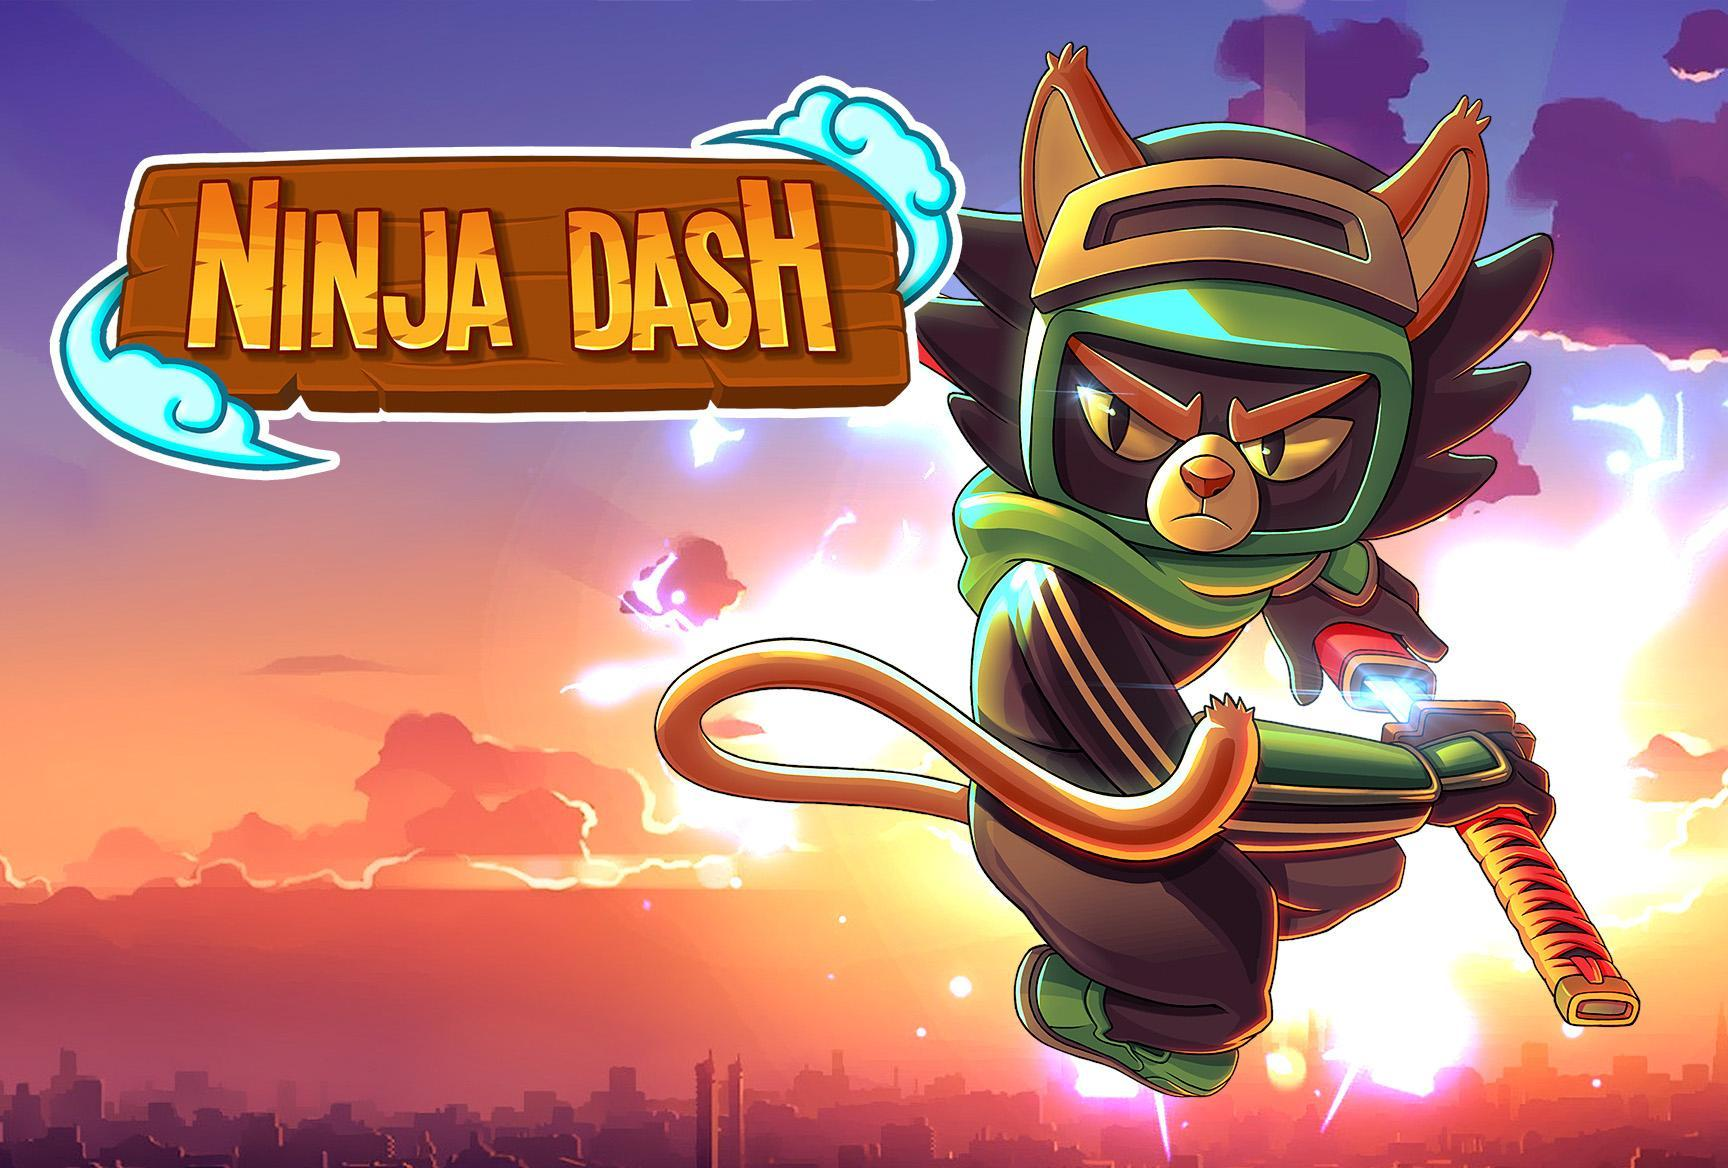 Ninja Dash Run - Epic Arcade Offline Games 2020 1.4.2 Screenshot 6